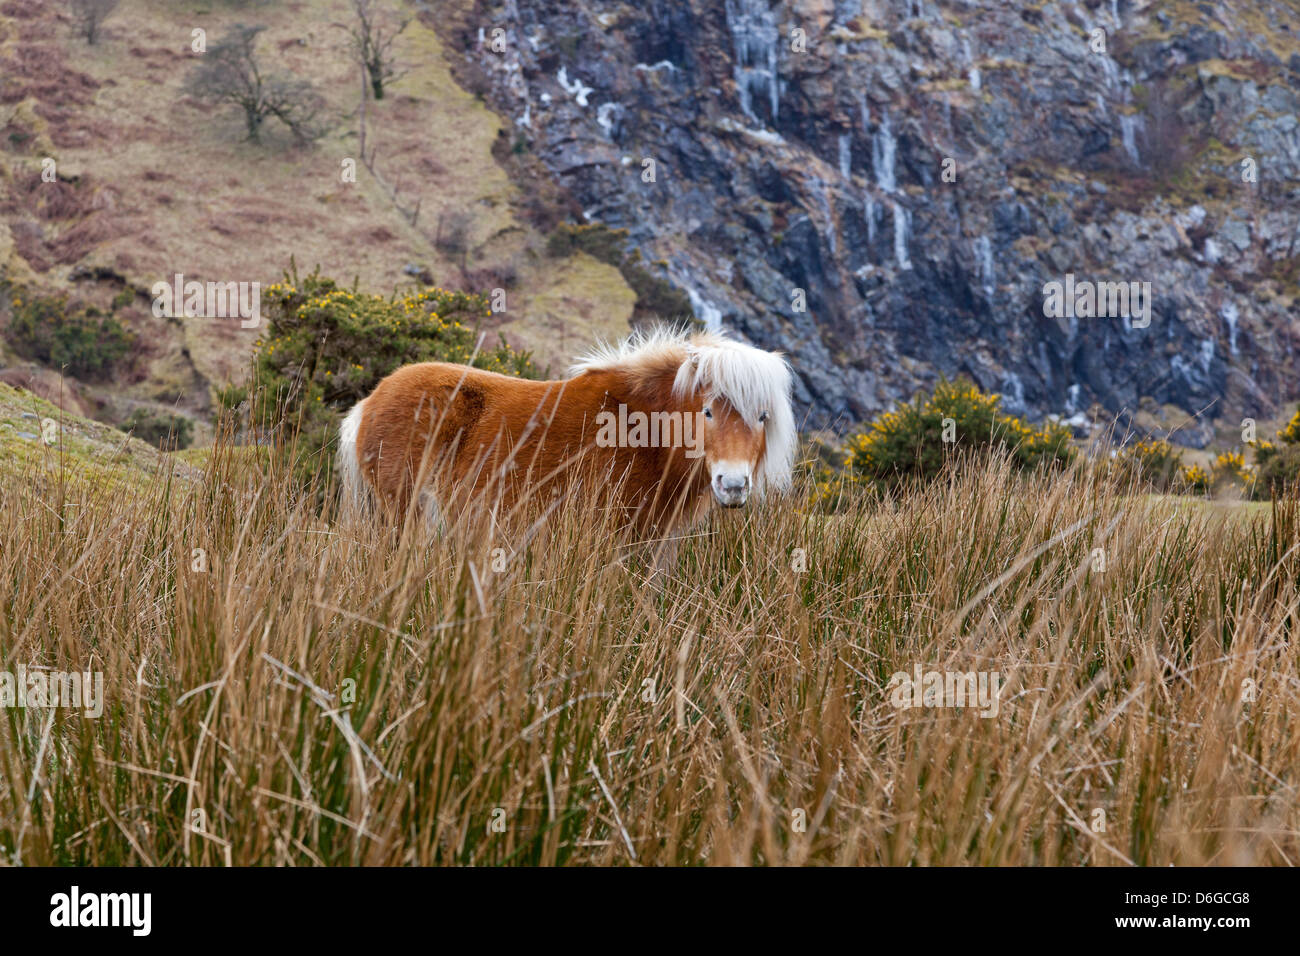 Dartmoor ponies wander through the National Park and are a feature of the landscape in Devon. - Stock Image